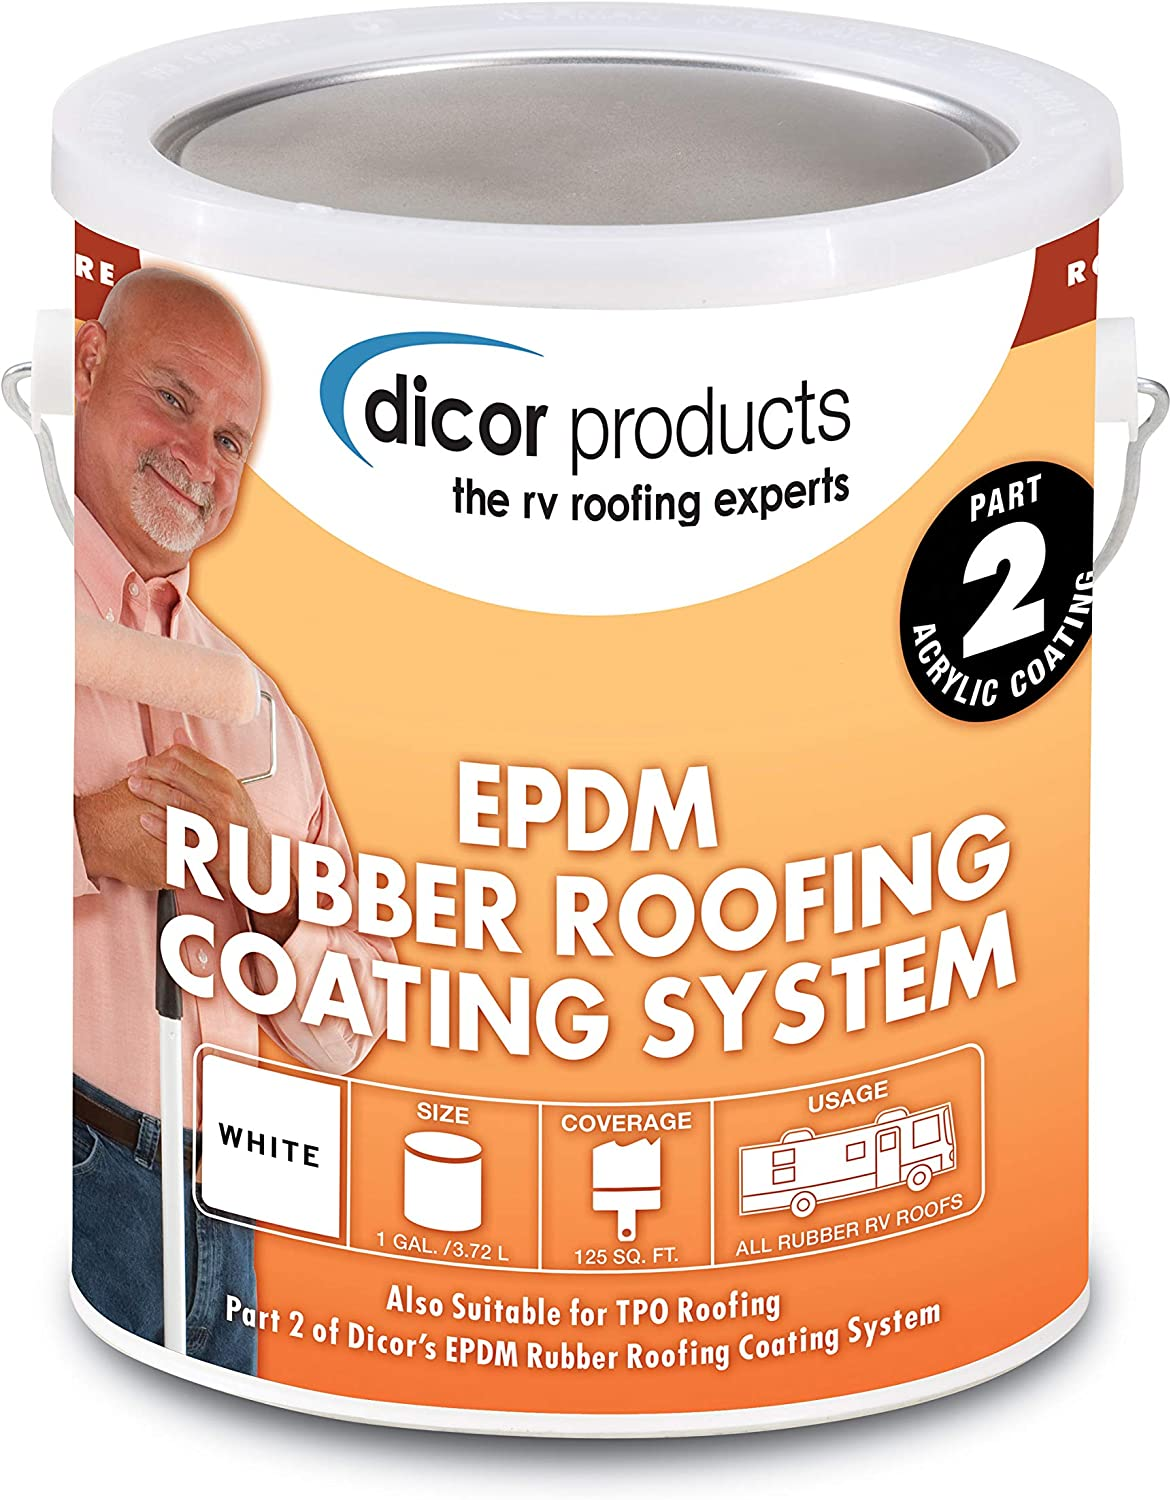 Dicor Rubber Roof Coating